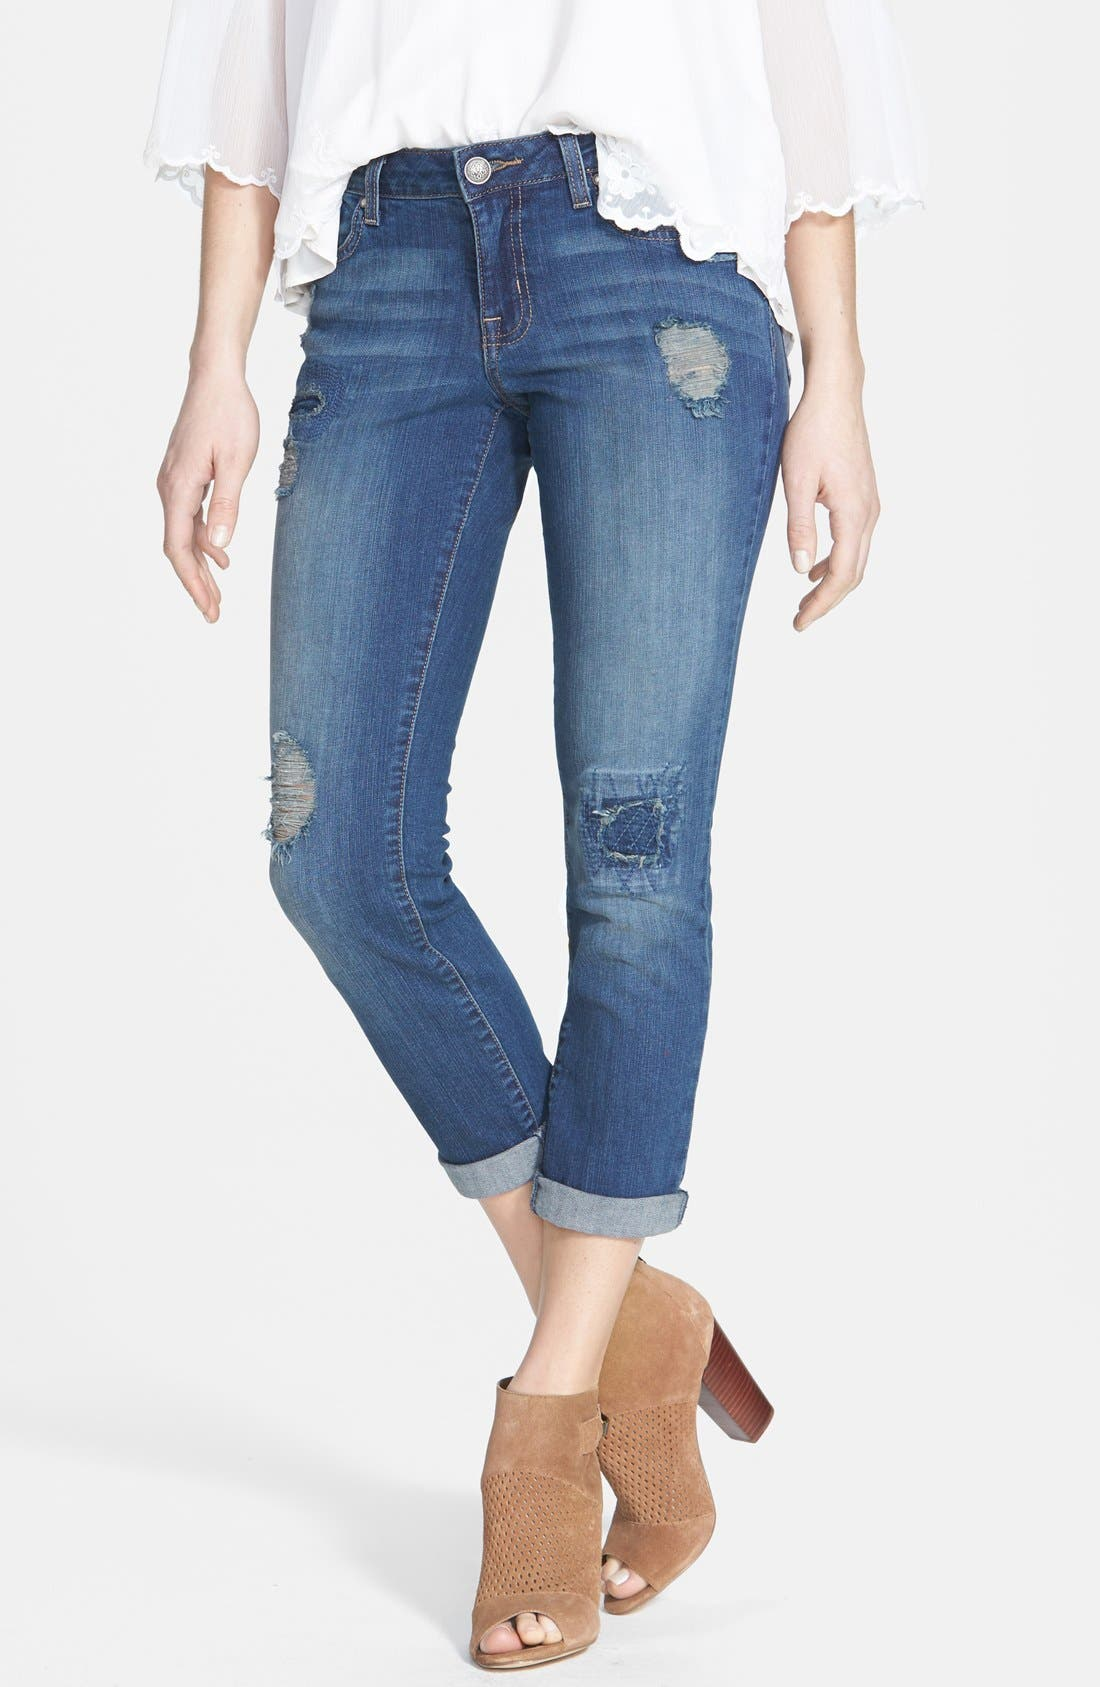 Alternate Image 1 Selected - Jessica Simpson 'Forever' Distressed Crop Skinny Jeans (Bluesine/Spain)